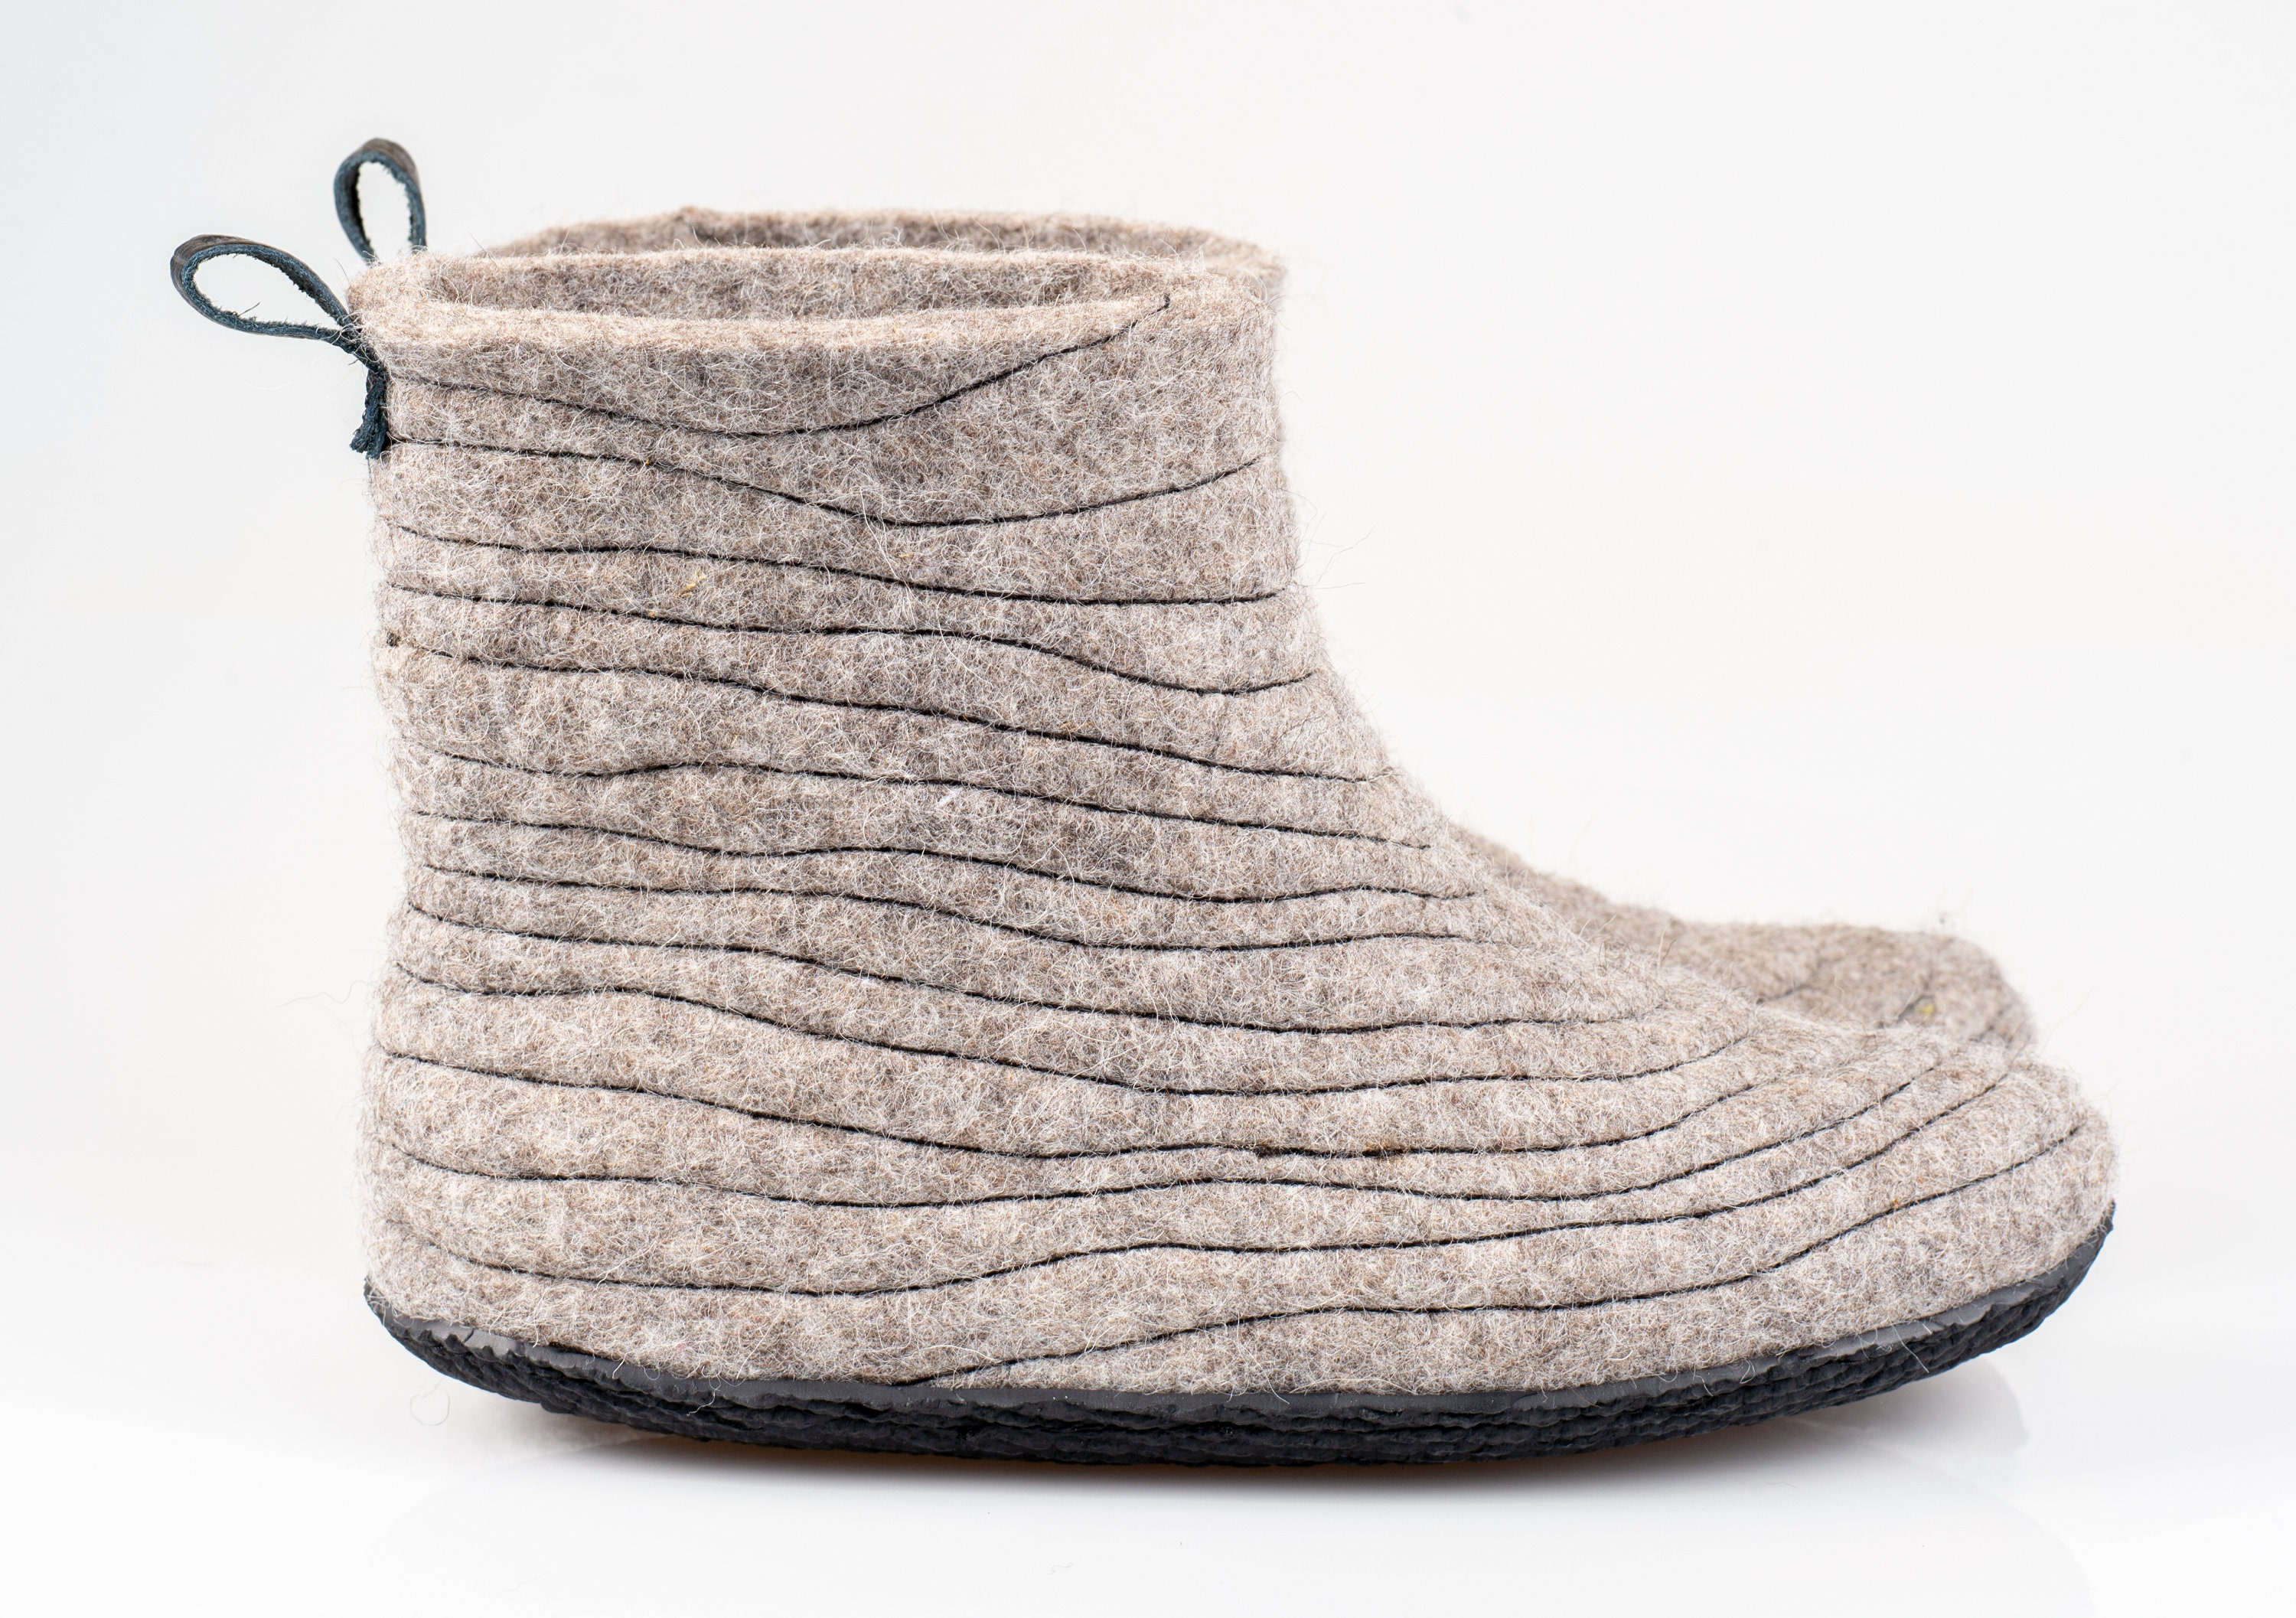 52fb88fea830b NEW Warm grey rustic unisex slippers boots with sturdy stitching on ...